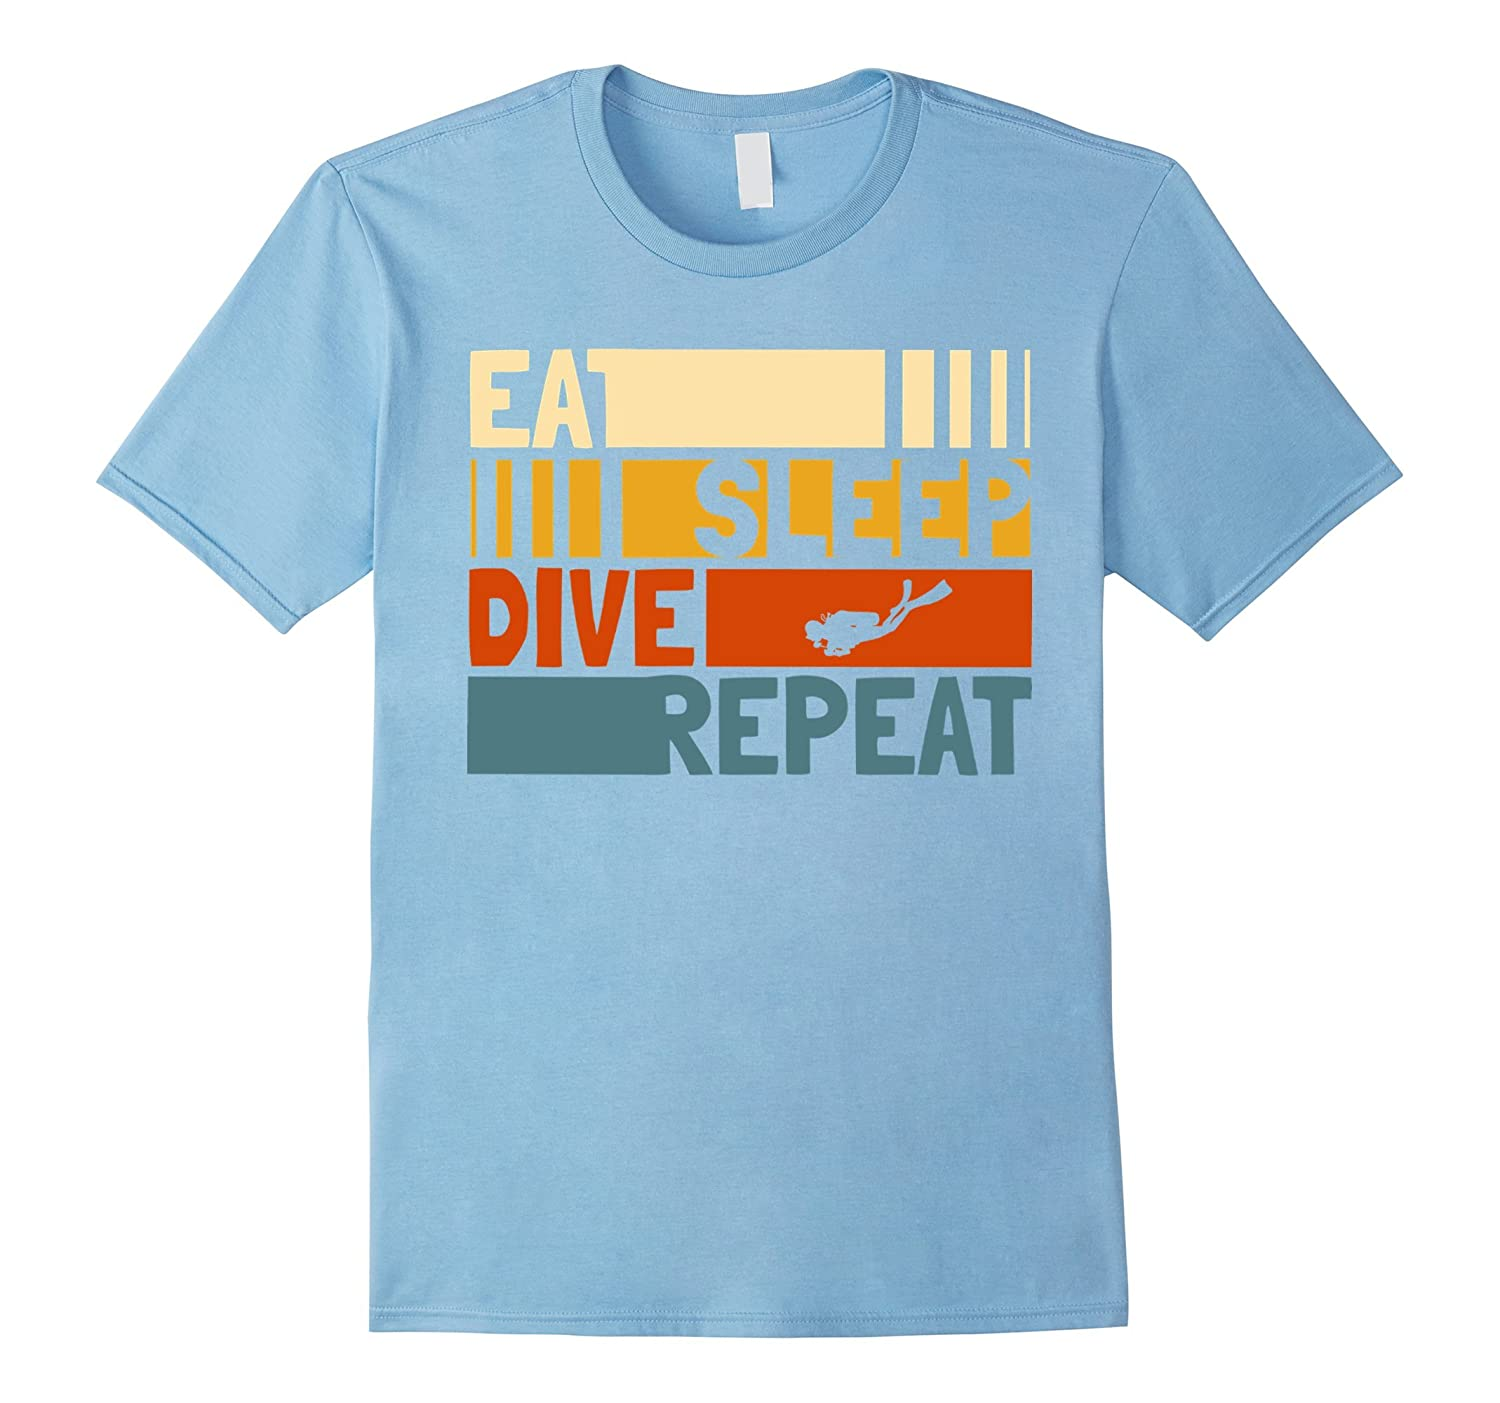 9aa5df27 Eat Sleep Dive Repeat T-Shirt Funny Retro Vintage Dive Gift-TH ...